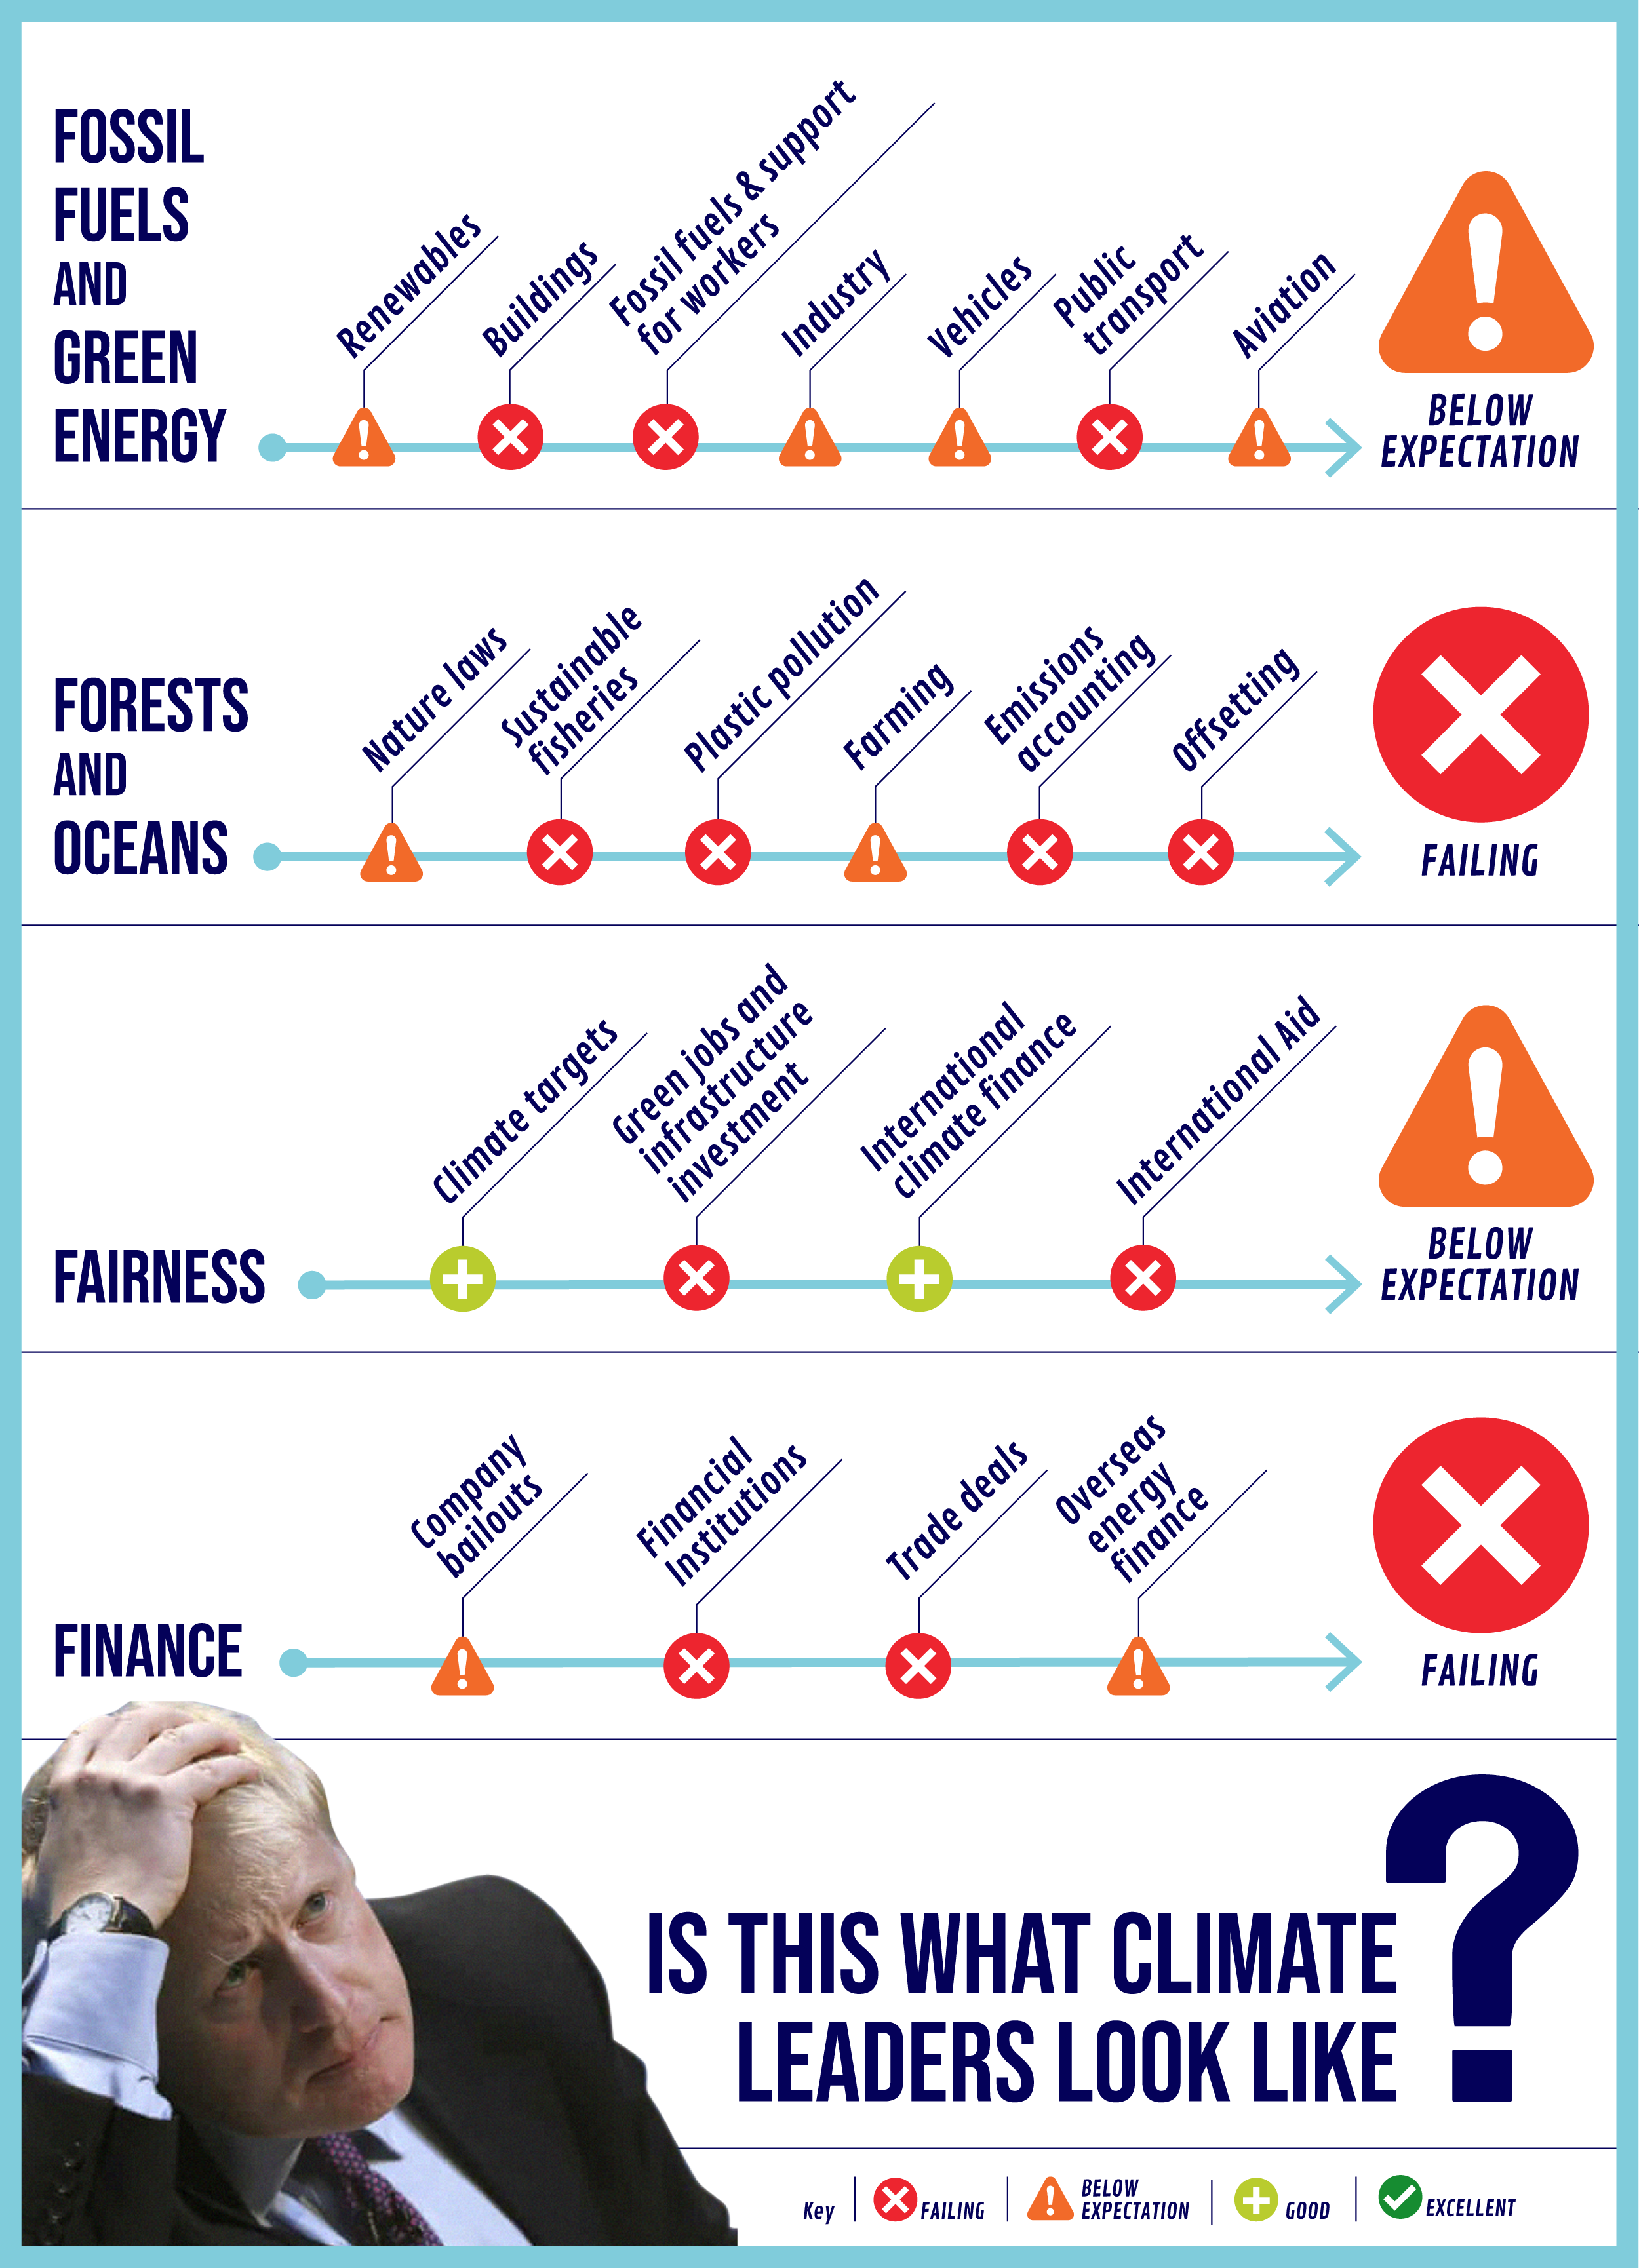 """Report card showing the UK's performance on climate change. Headline text reads """"Is this what climate leaders look like?"""" with accompanying photo of Boris Johnson with his head in his hands. The overall impression is of very poor performance. Summary results (4 items): fossil fuels and green energy: below expectation. Forests and oceans: failing. Fairness: below expectation. Finance: failing. Detailed breakdown (21 items): Renewables: below expectation. Buildings: failing. Fossil fuels and support for workers: failing. Industry: below expectation. Vehicles: below expectation. Public transport: failing. Aviation: below expectation. Nature laws: below expectation. Ocean protection: failing. Plastic pollution: failing. Farming: below expectation. Emissions accounting: failing. Offsetting: failing. Climate targets: good. Green jobs and infrastructure investment: failing. International climate finance: good. International aid: failing. Company bailouts: below expectation. Financial institutions: failing. Trade deals: failing. Overseas energy finance: below expectation."""